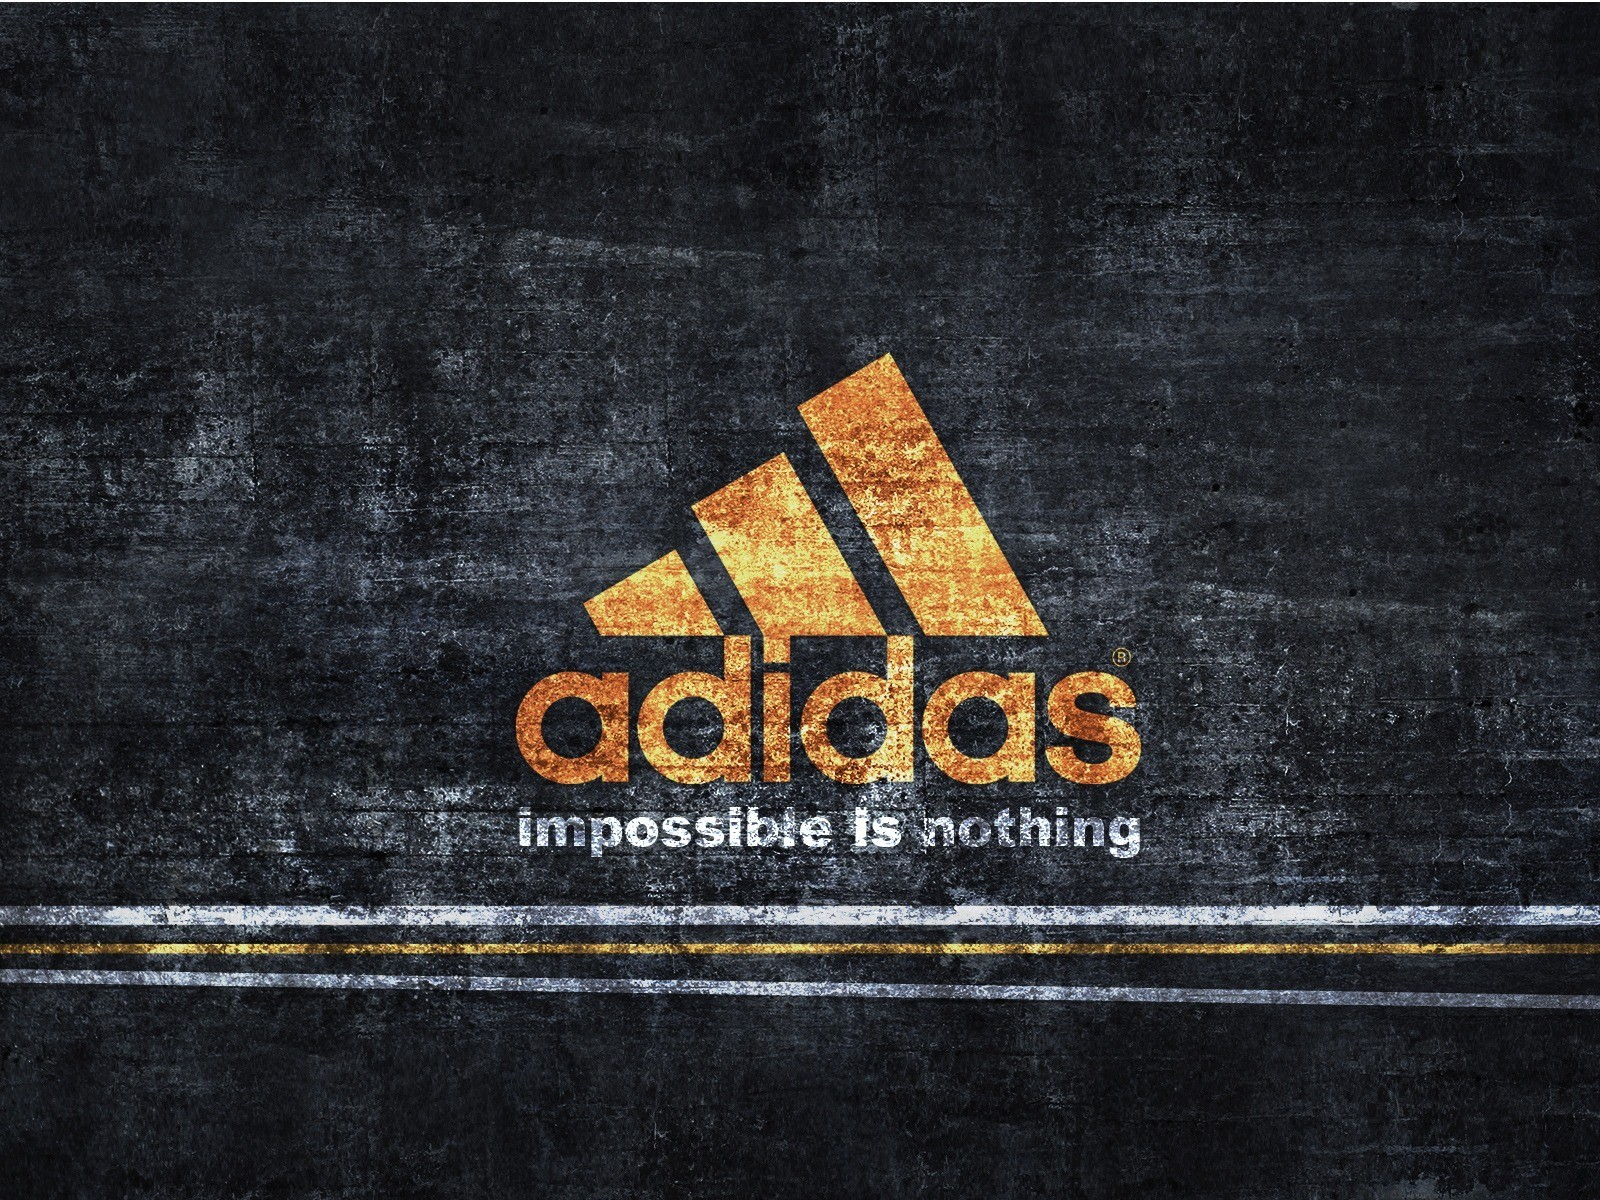 Adidas impossible is nothing HD Wallpaper